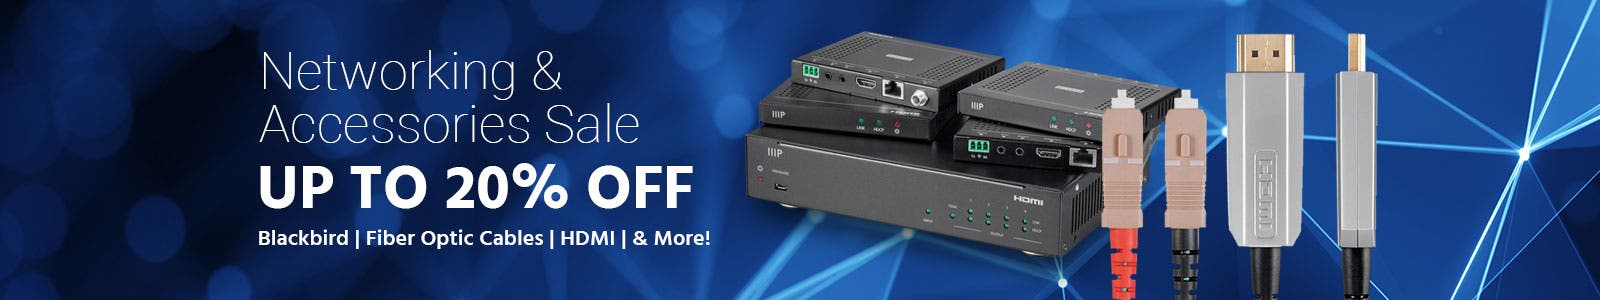 Networking & Accessories Sale. Up To xx% Off! Blackbird | Fiber Optic Cables | HDMI | & More!, Shop Now